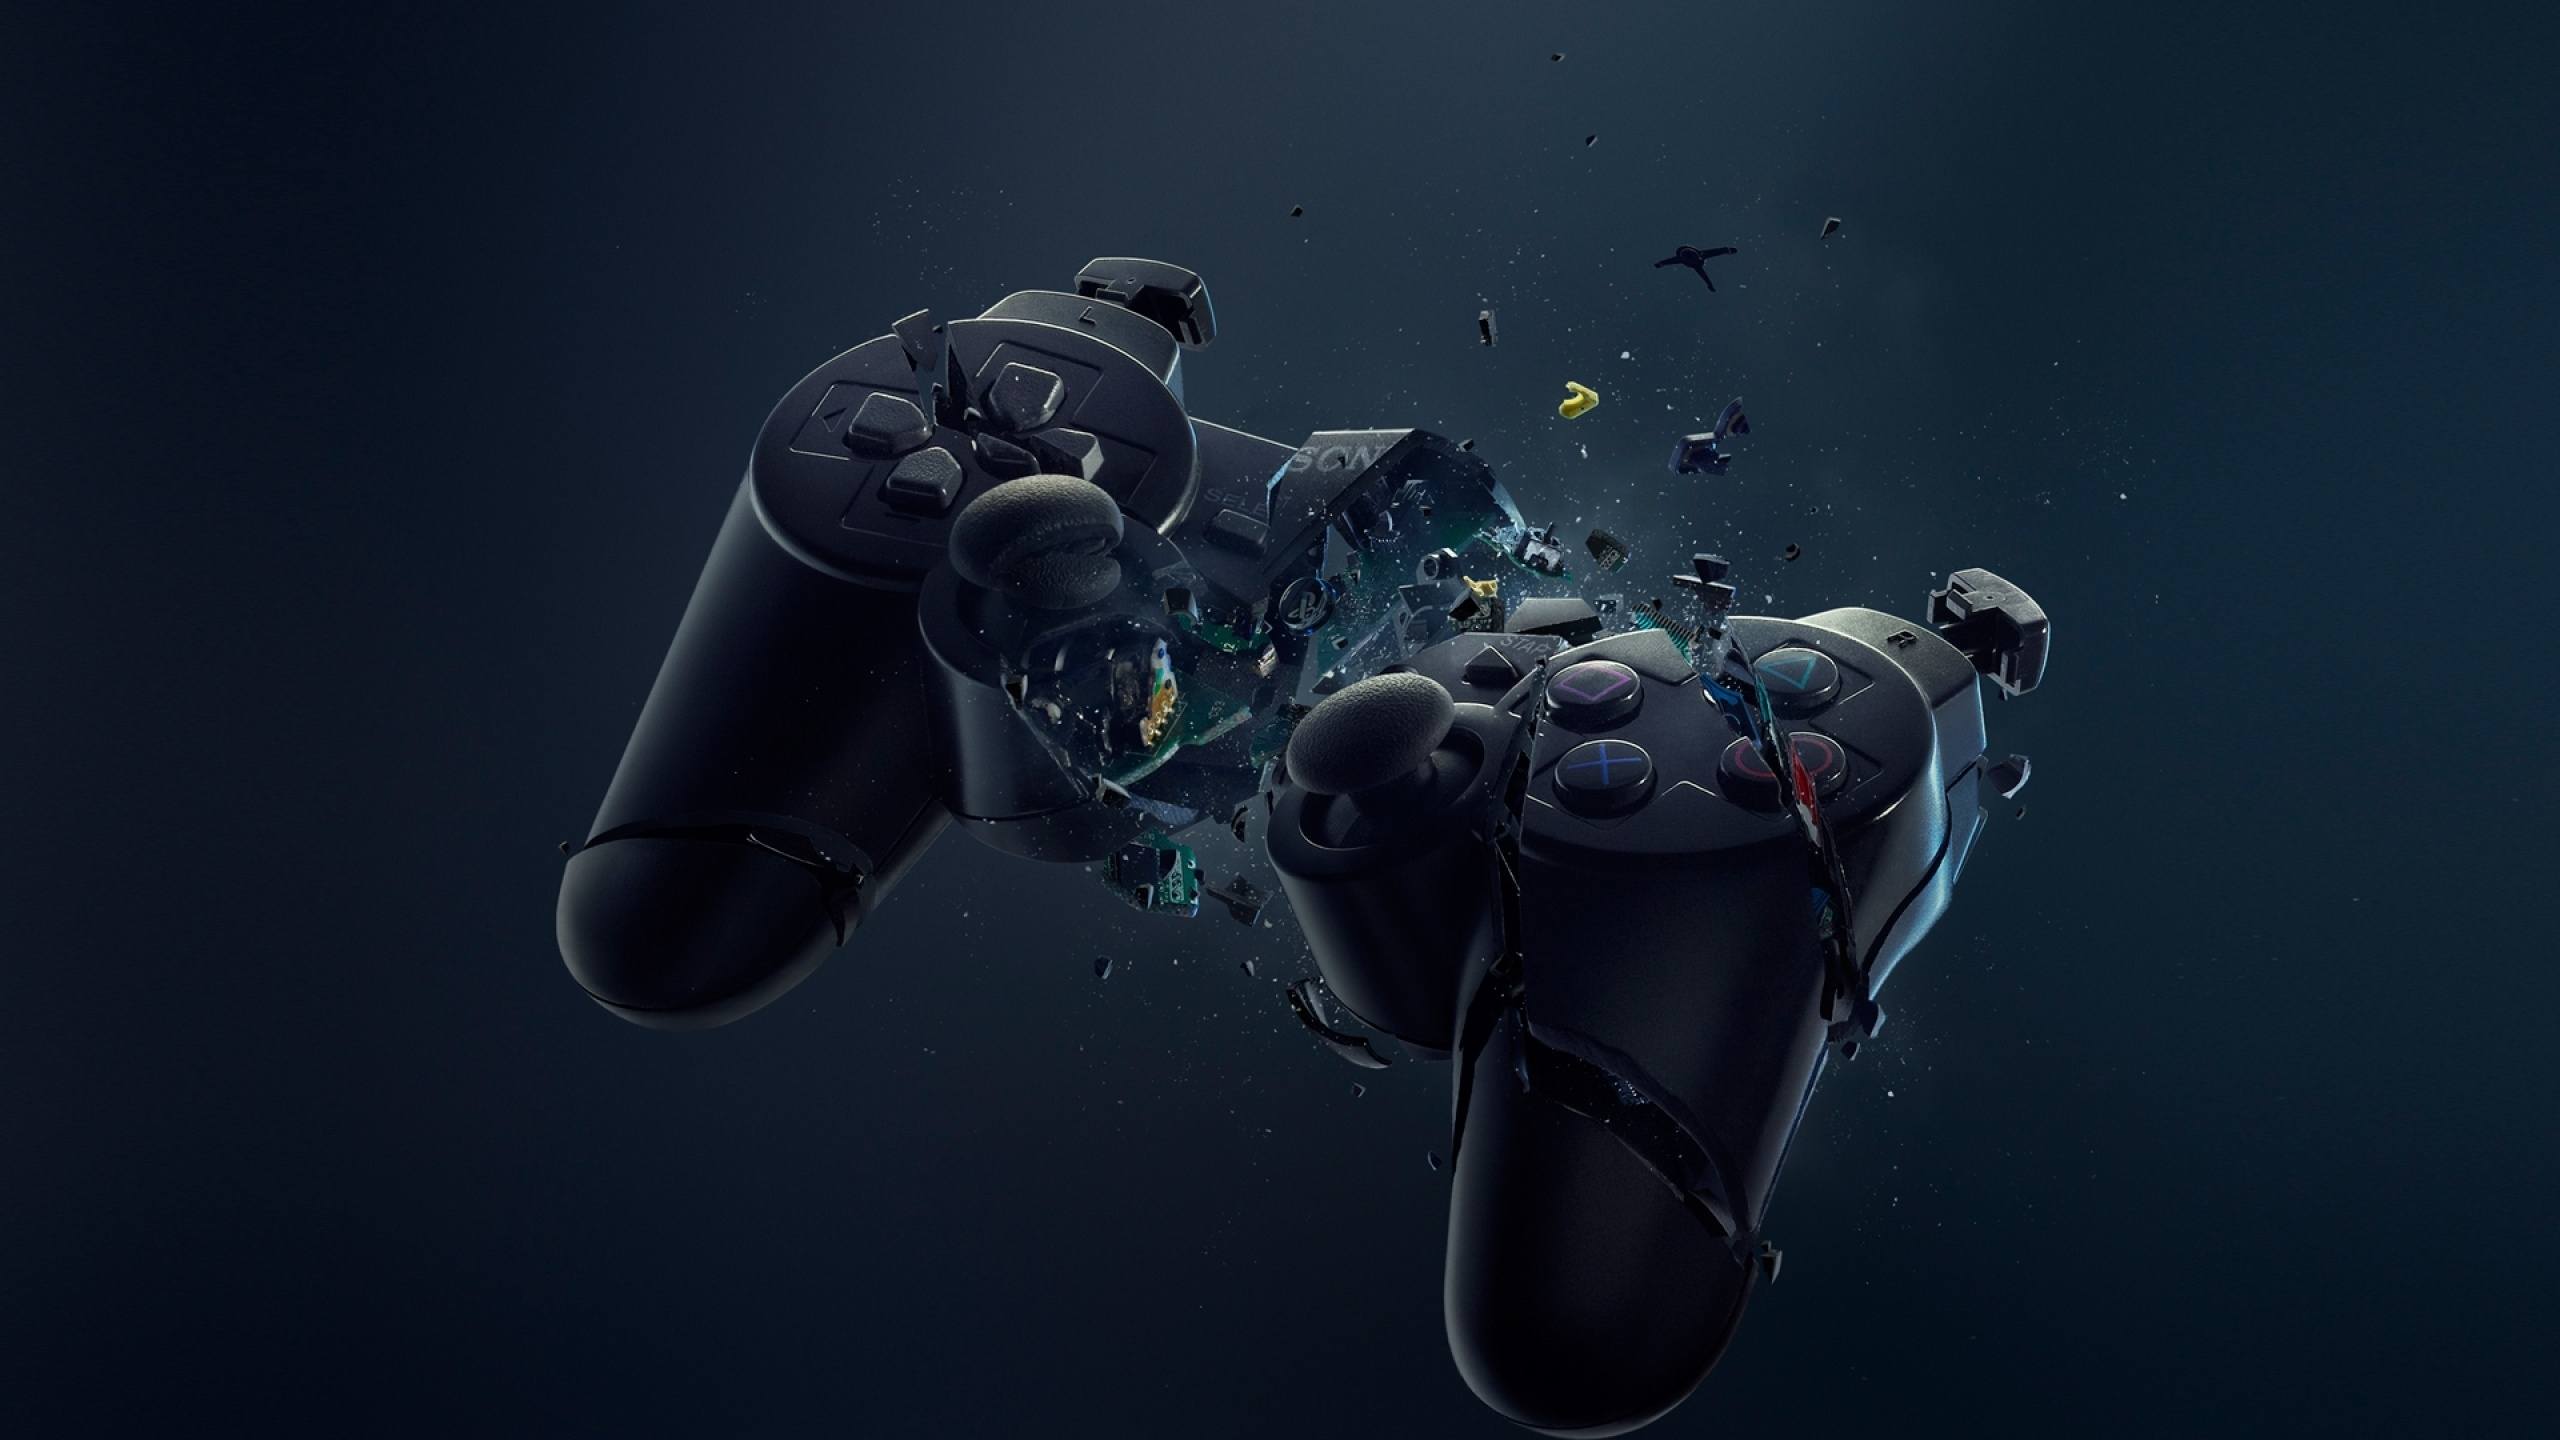 Download Broken Playstation 3 Controller Wallpaper for 2560 x 1440 2560x1440